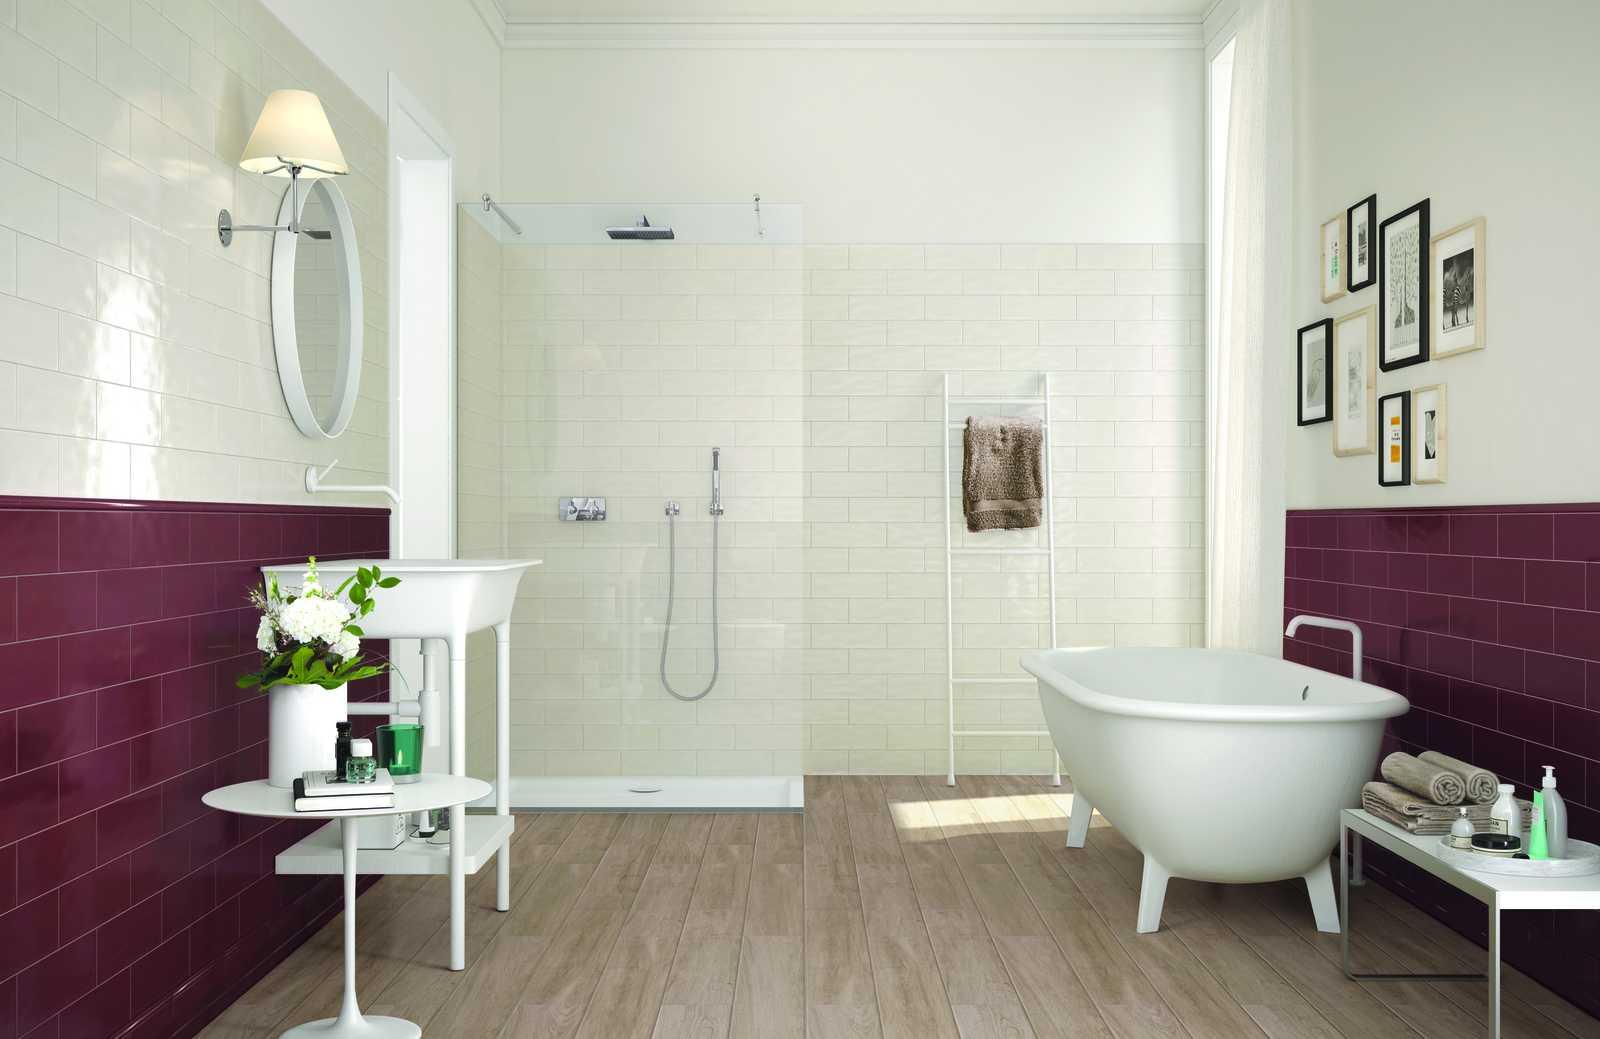 Brick Glossy Collection: Kitchen and bathroom wall tiles | Ragno on royal bathroom curtains, royal closets designs, royal greek designs, royal living room, royal wall designs, royal wedding designs, royal master bathrooms, royal purple bathroom, royal furniture designs, royal dining designs, royal painting designs, royal sofa design, royal bedroom designs, royal kitchens, royal jewelry designs, royal remodeling, royal flush designs, royal blue bathroom, royal paint designs, royal banner designs,